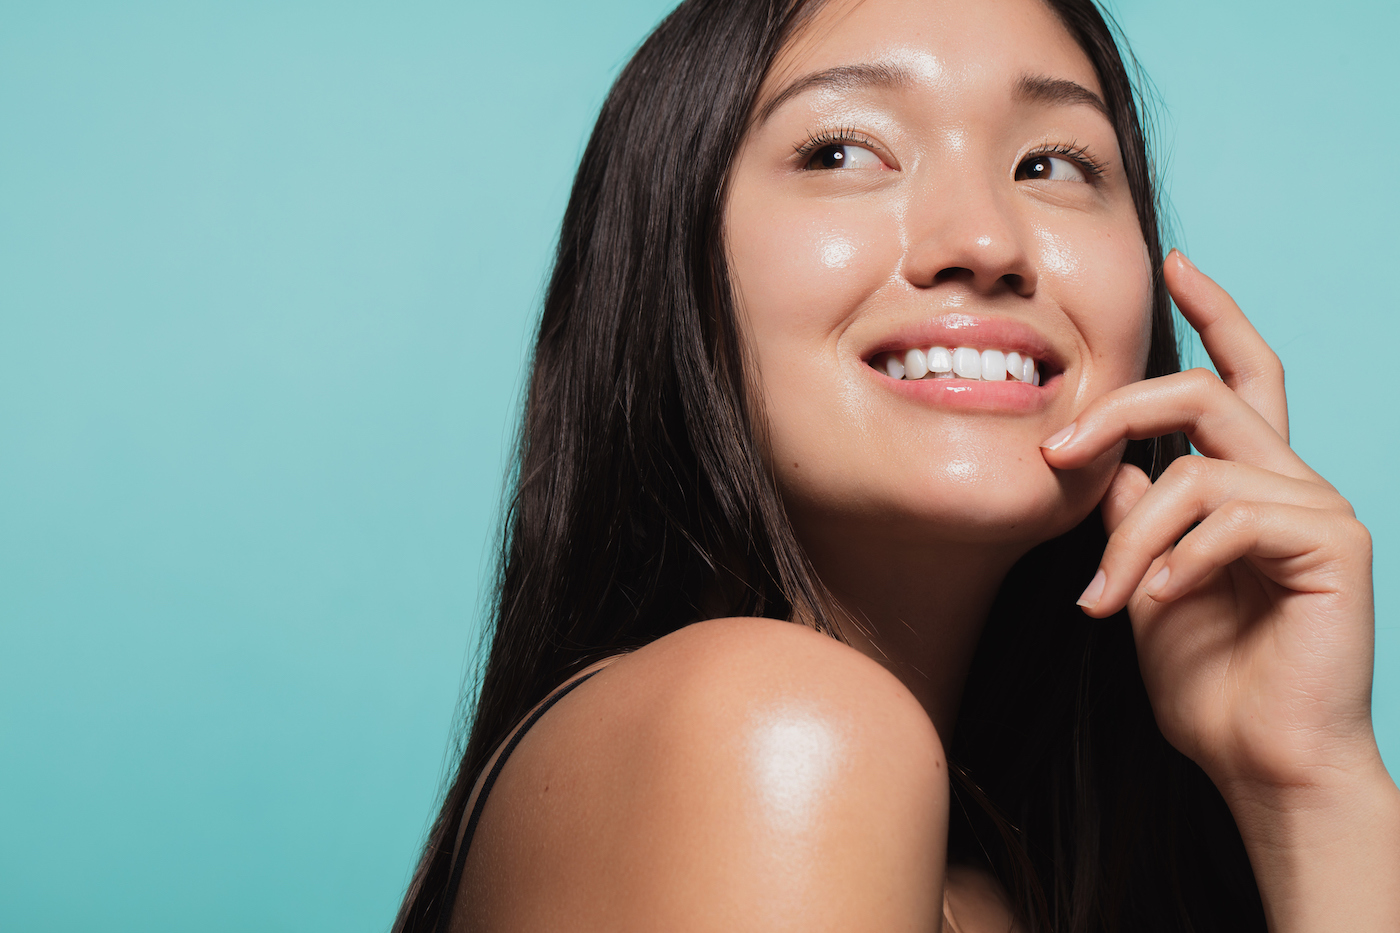 Thumbnail for 8 Dermatologist Skin-Care Tips That Cost $0 To Add Into Your Regimen